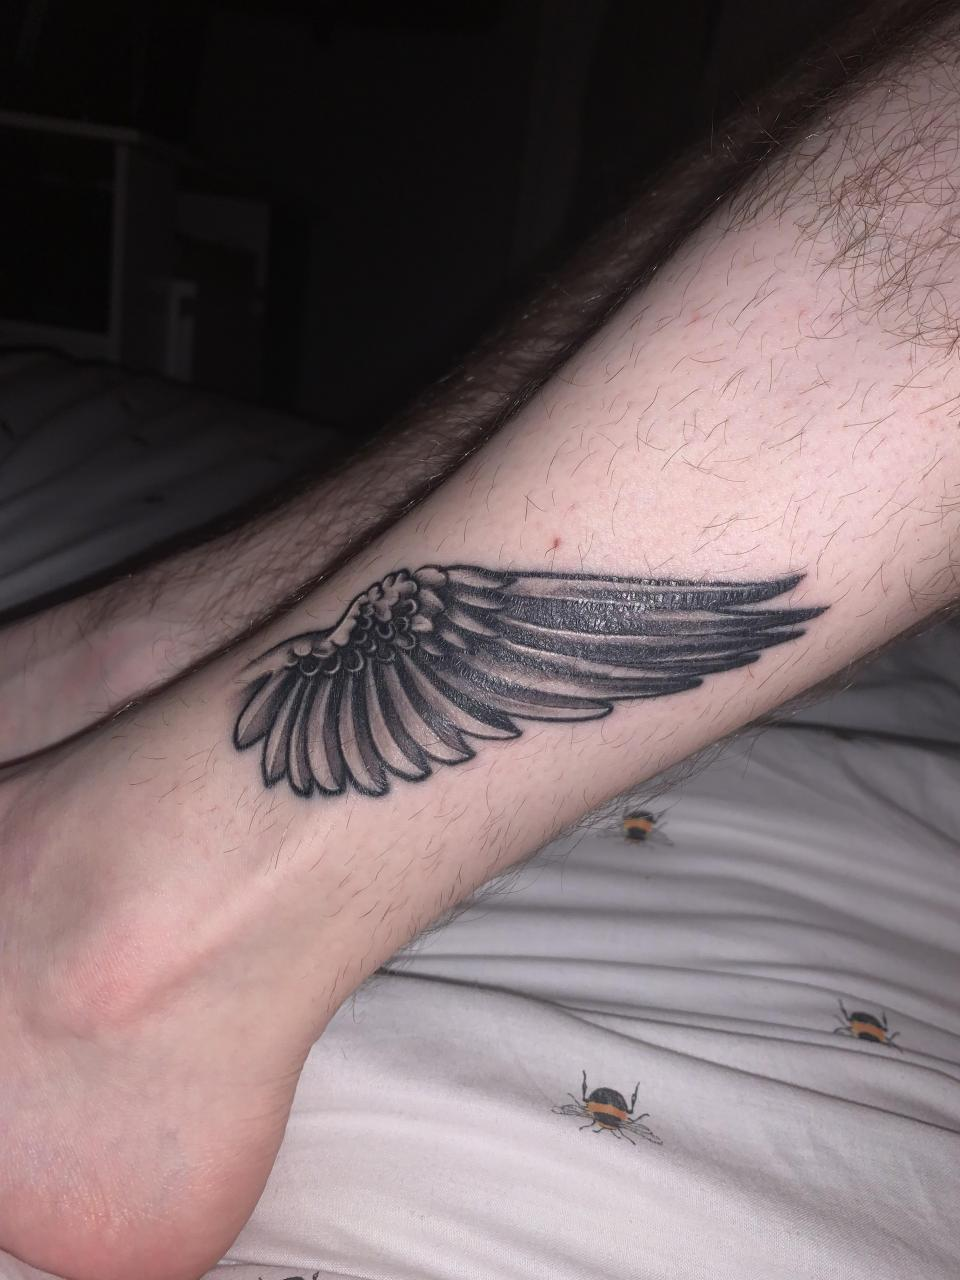 Hermes inspired wing tattoos (mirrored on other leg) done by Deco @ Kaizen Tattoos and Piercings in Cumbernauld